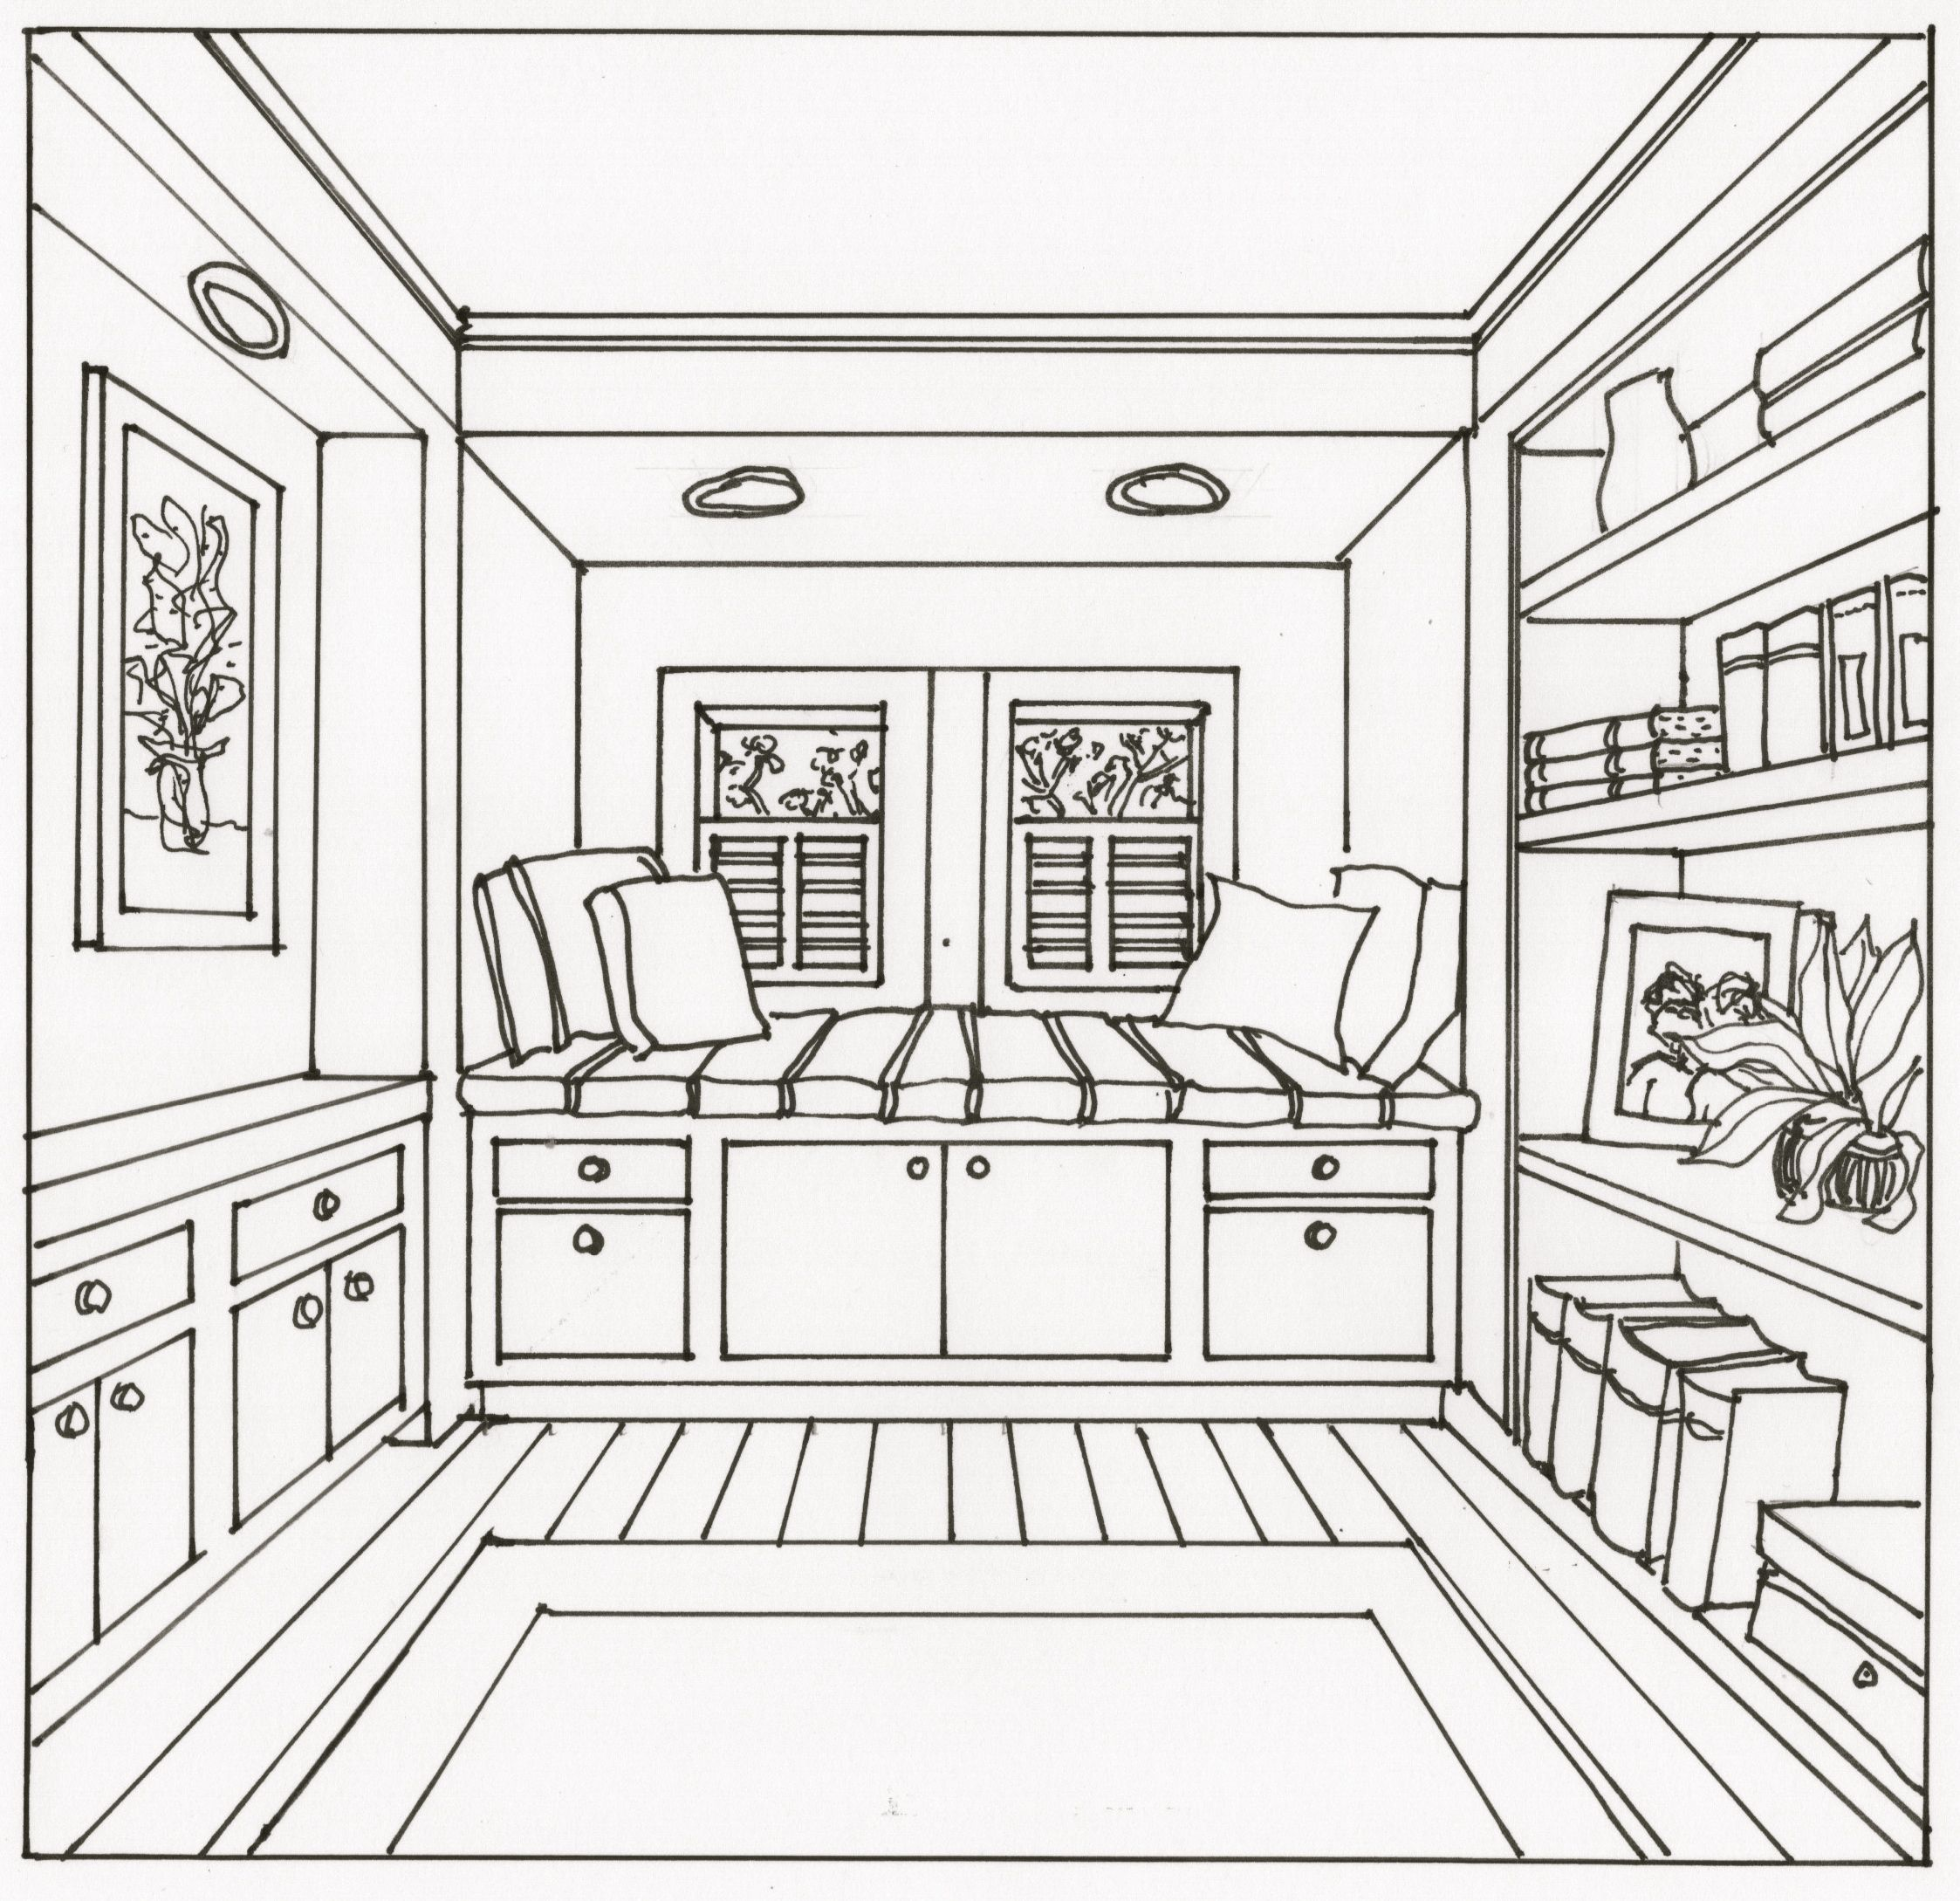 Open door drawing perspective - I Am Always Looking For Techniques That Are Easy And Fast For Drawing One Point